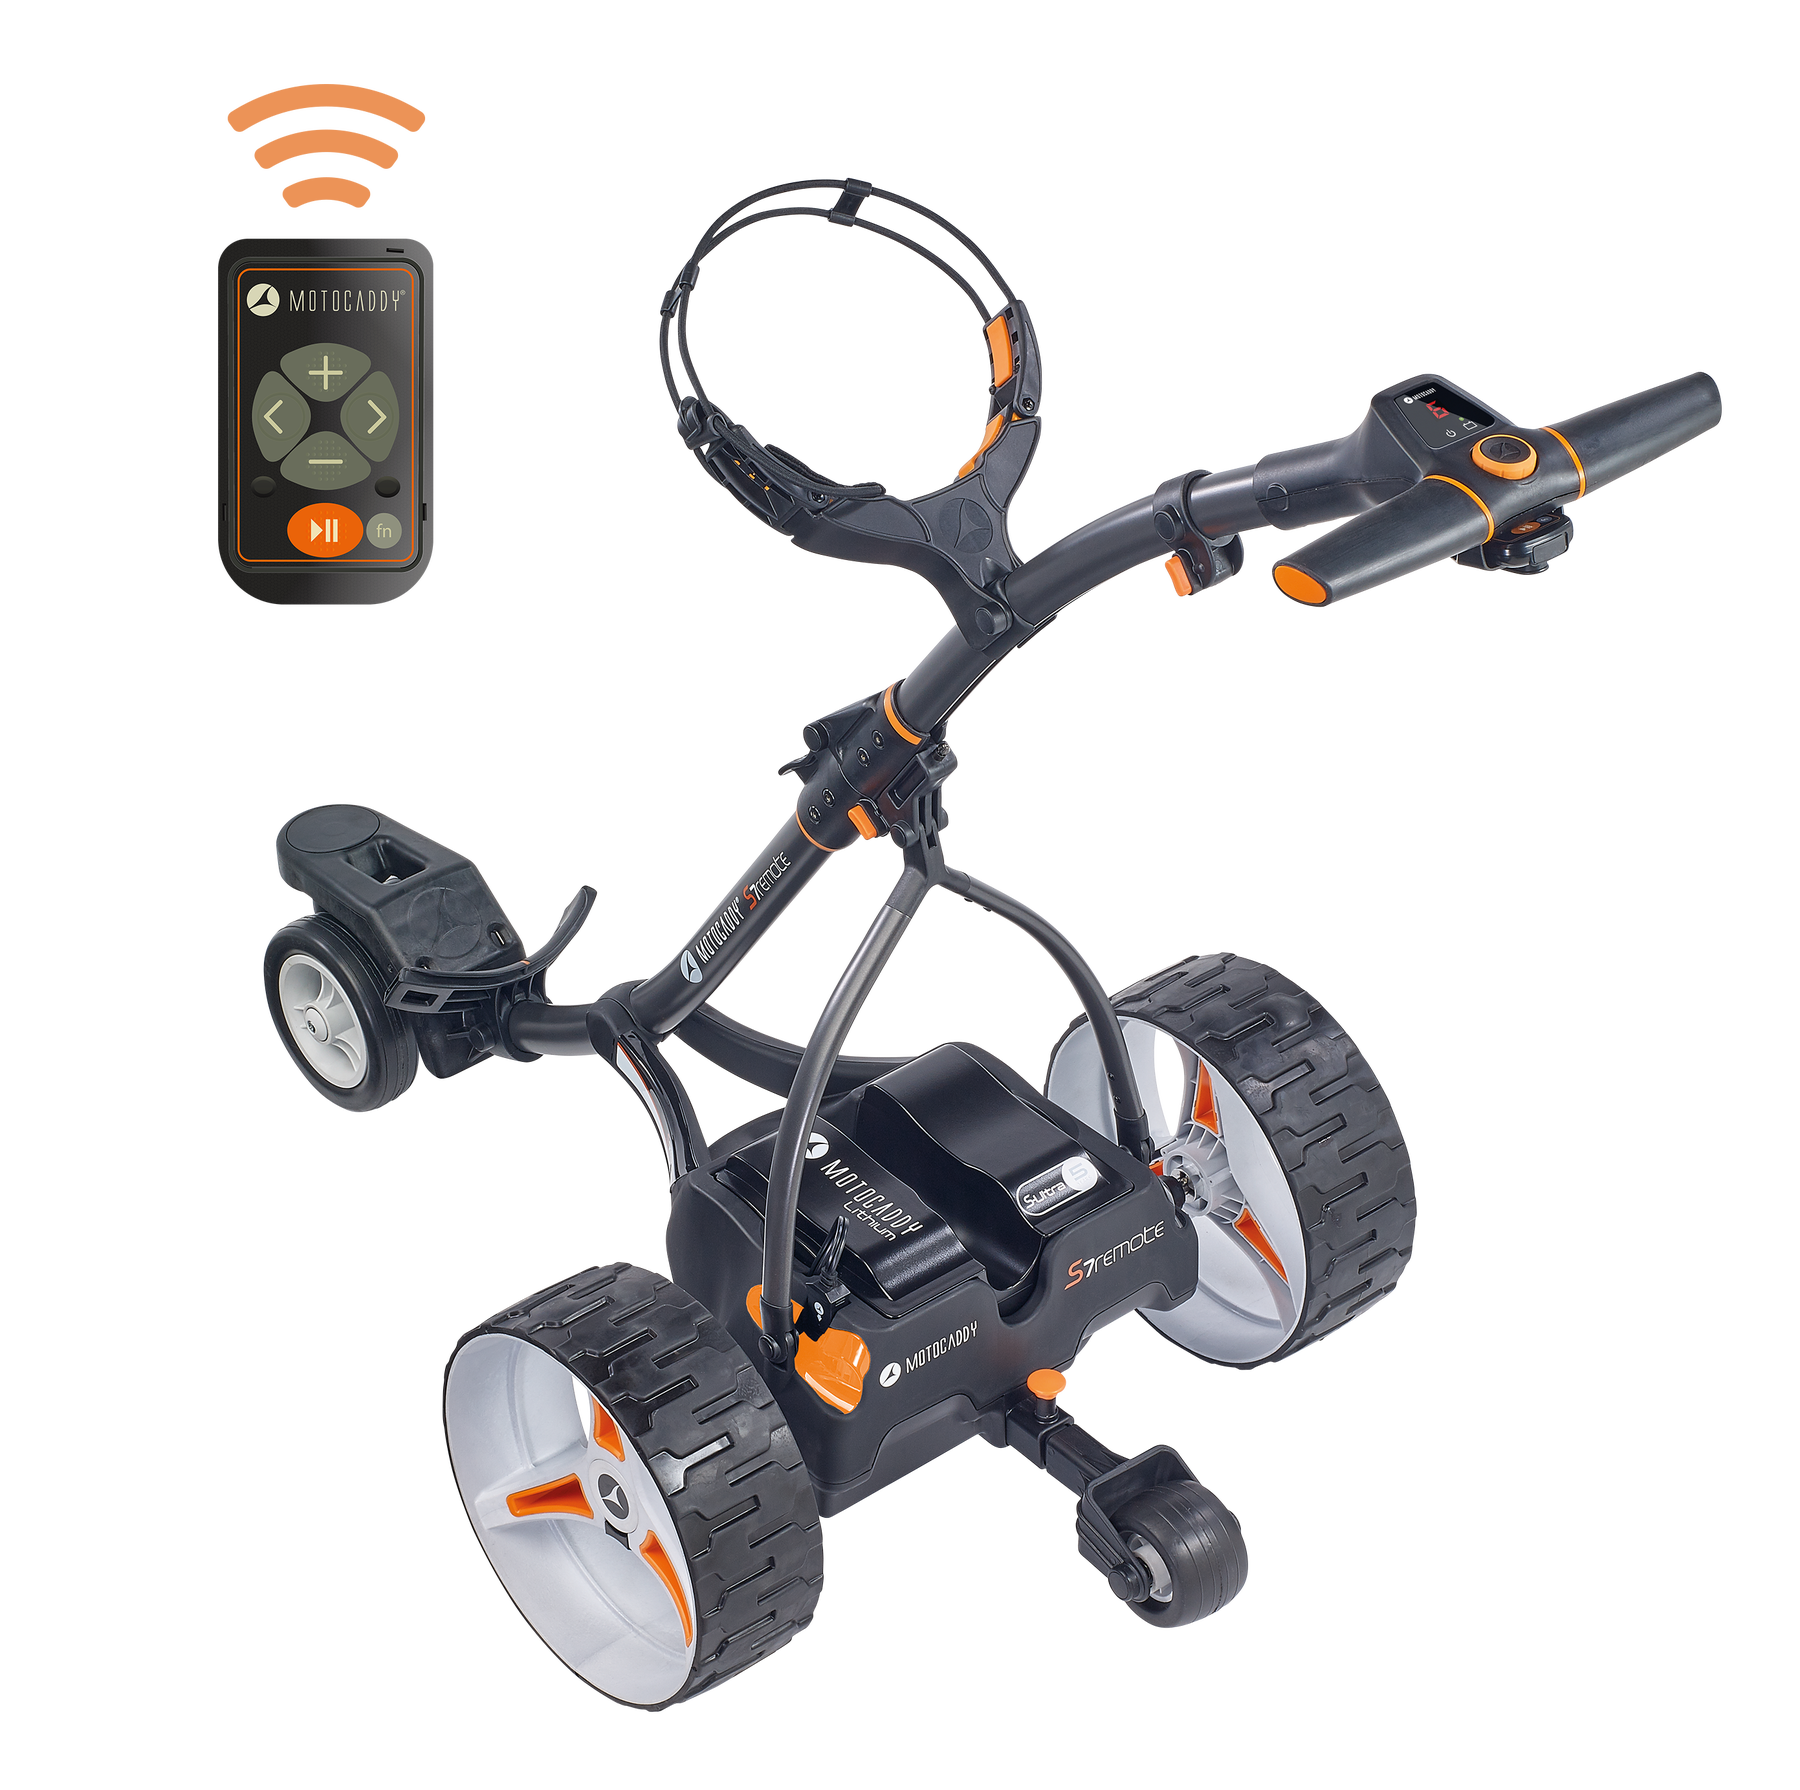 Motocaddy corrected S7 REMOTE Graphite High-Angled with Handset